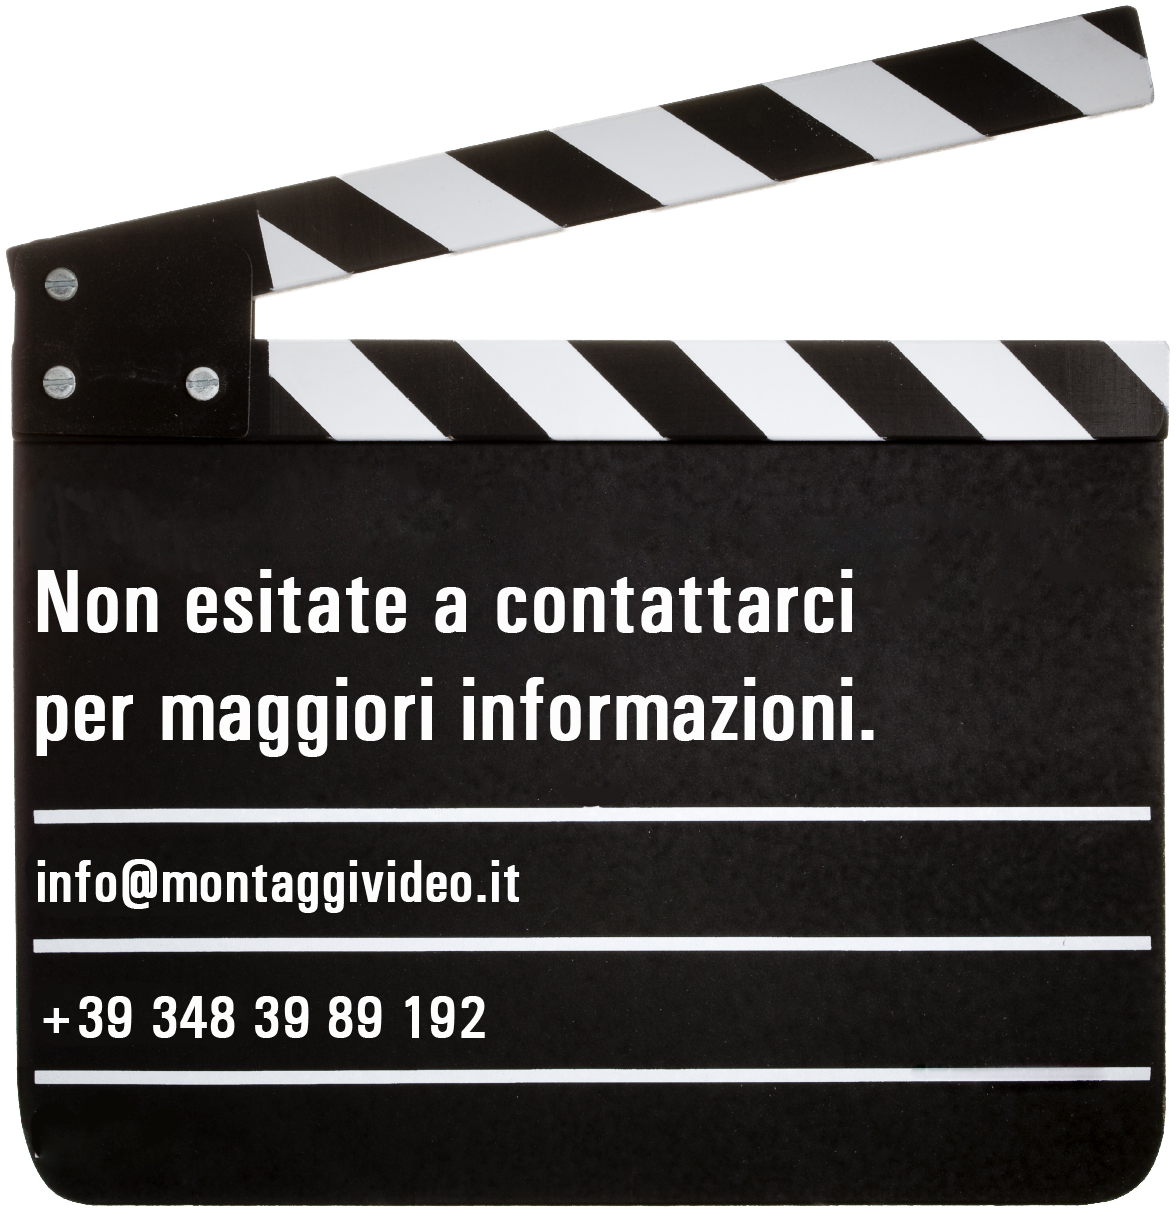 Contatti Montaggi Video.it